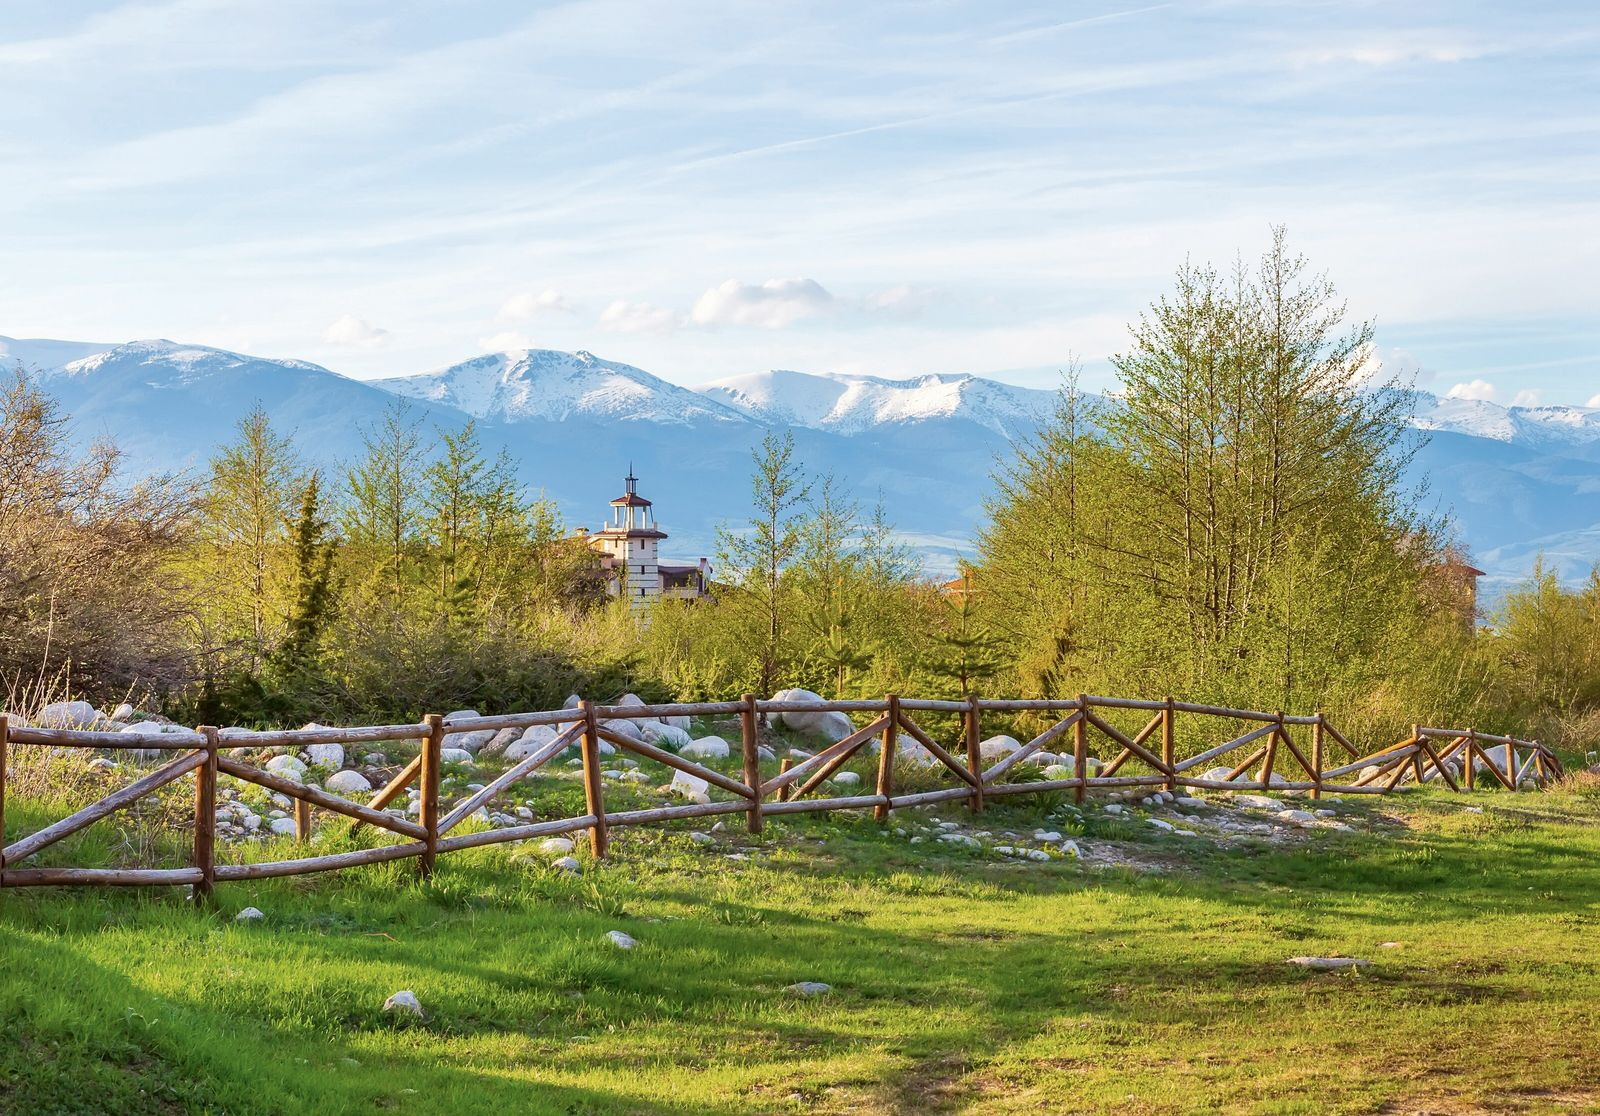 Bansko in springtime, with the Pirin Mountains in the background.